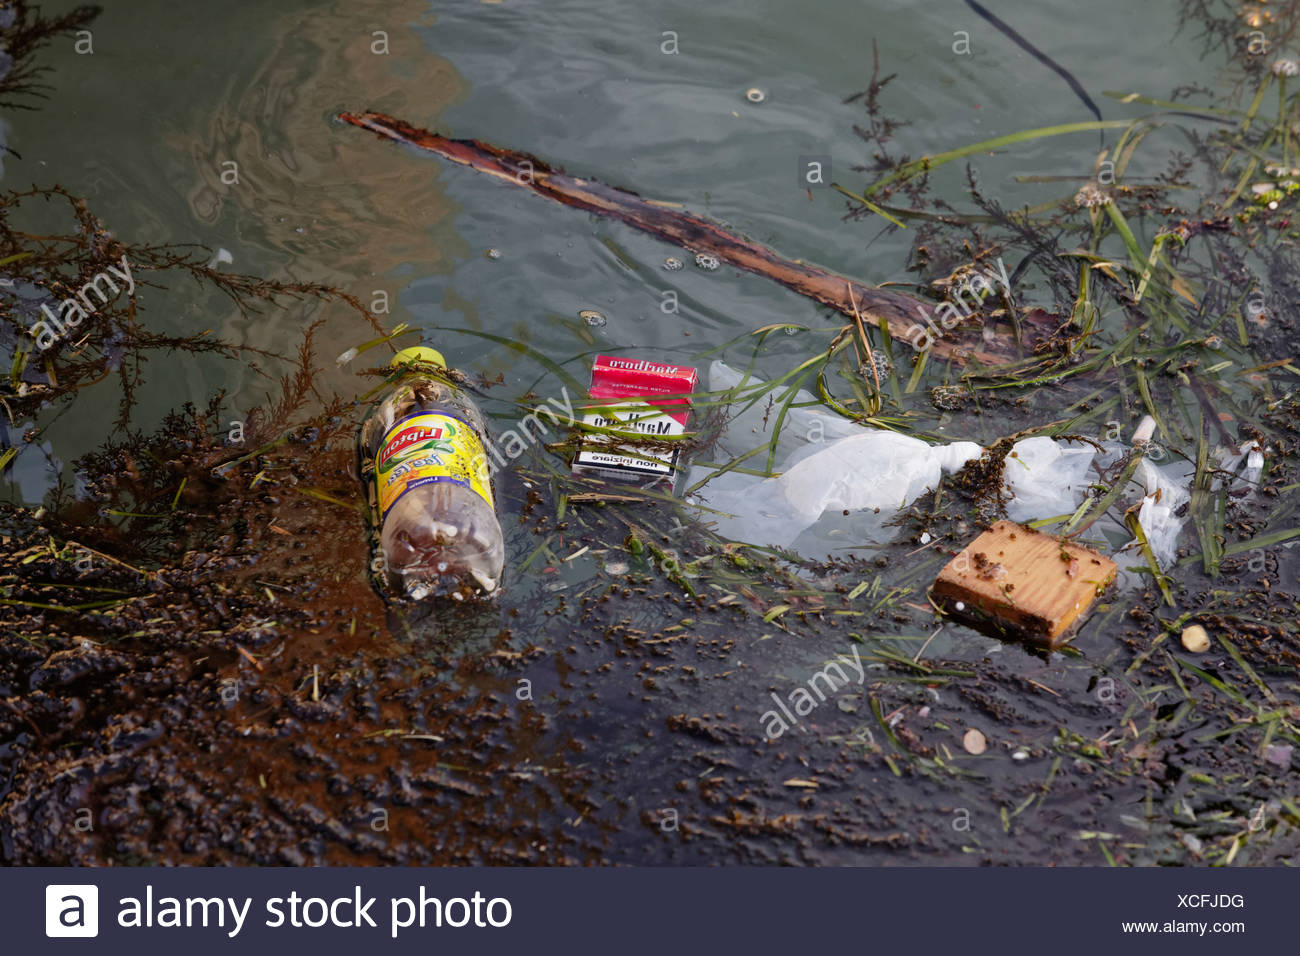 Garbage in the water, pollution, Venice, Venetia, Italy, Europe - Stock Image